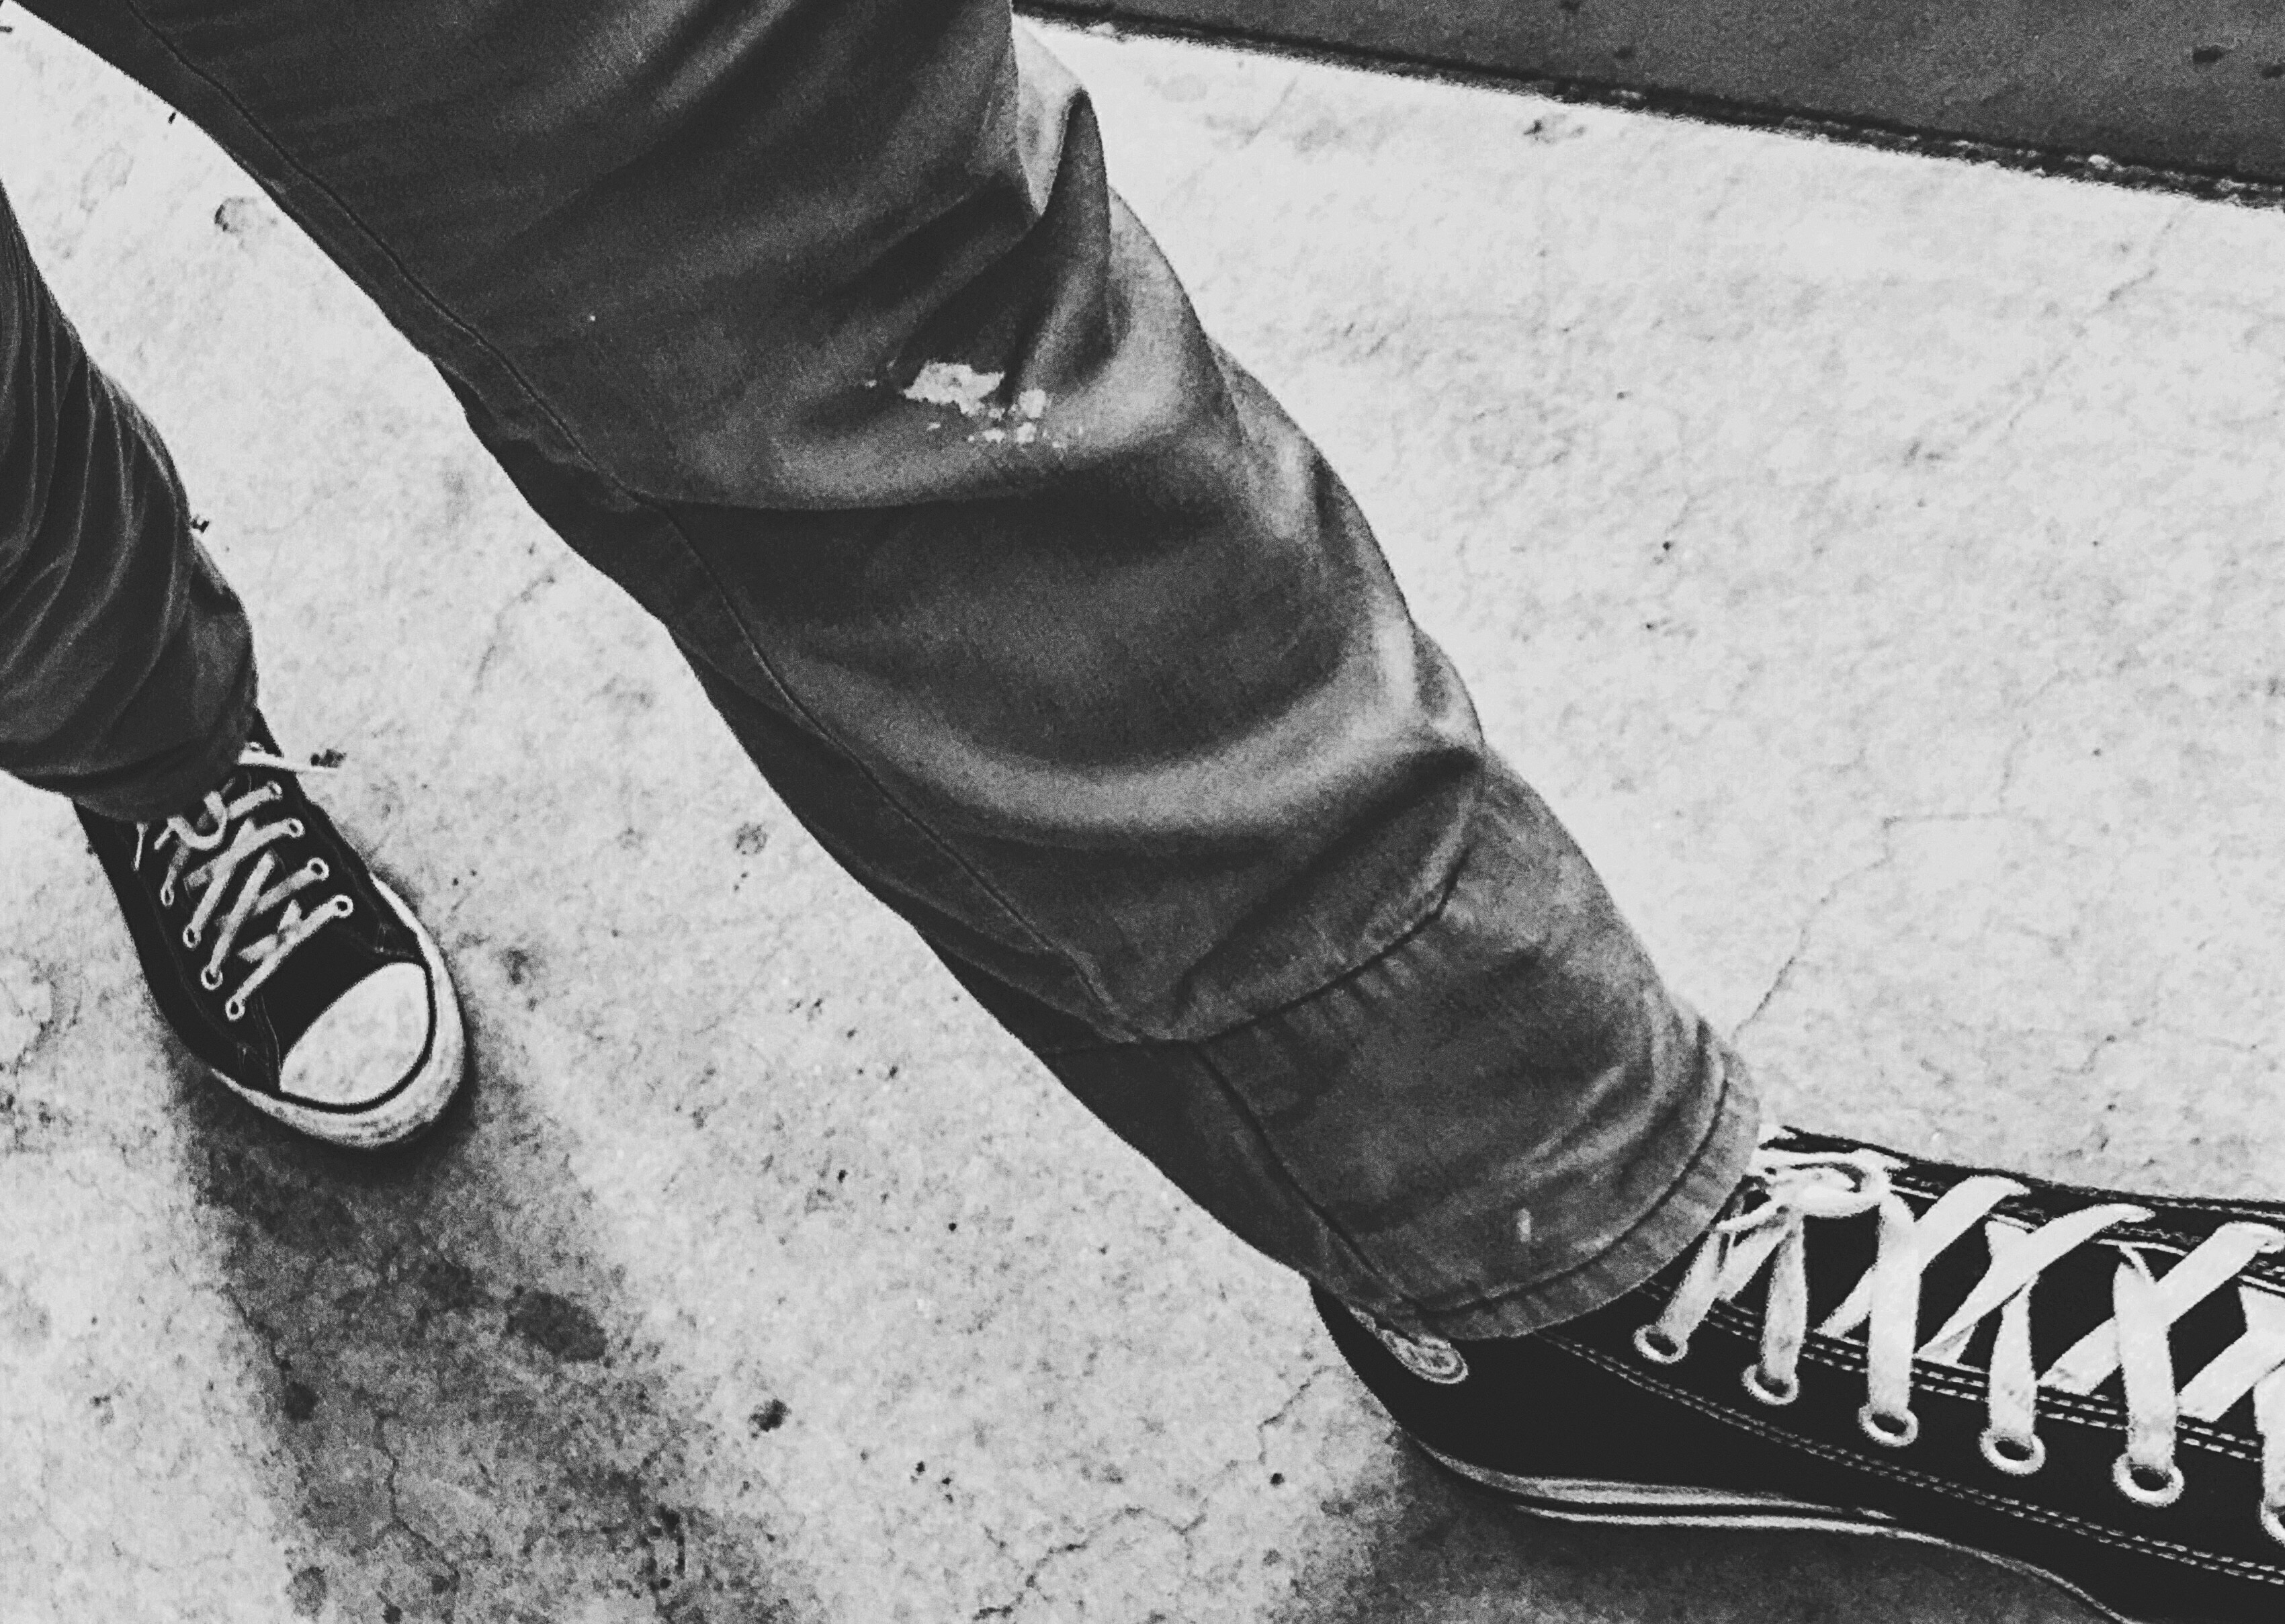 person walking wearing black shoes in grayscale